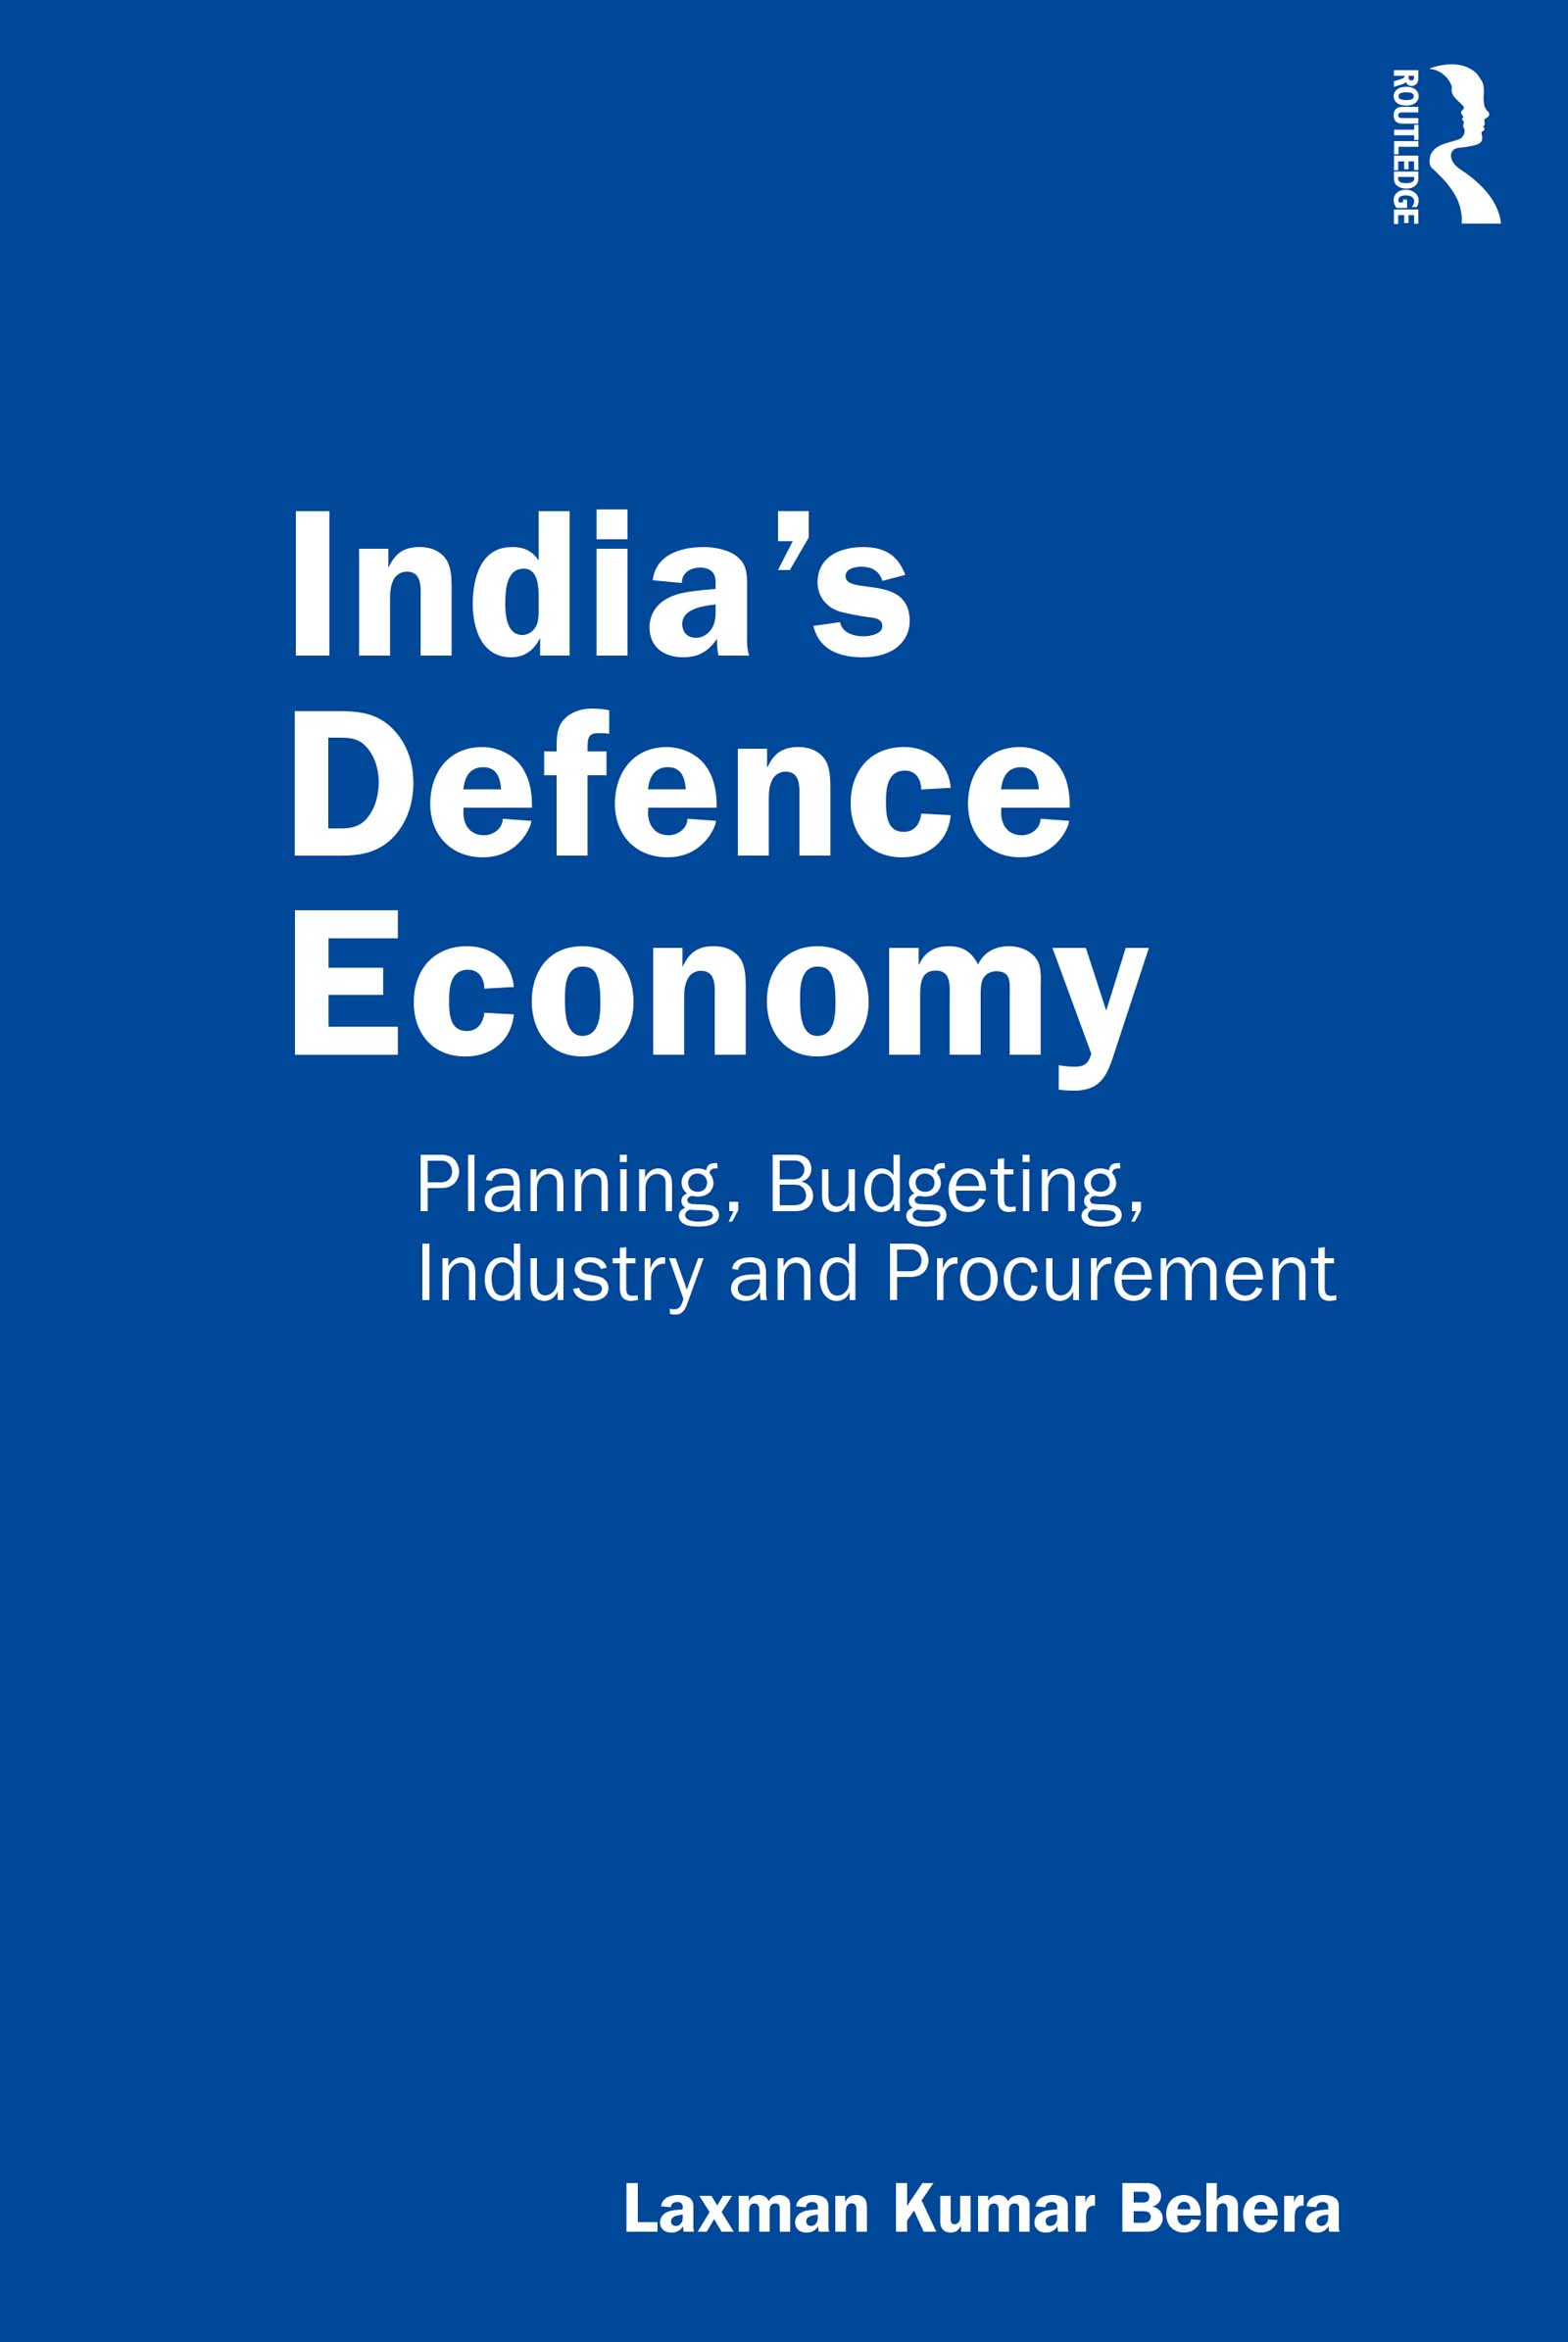 Planning for India's defence